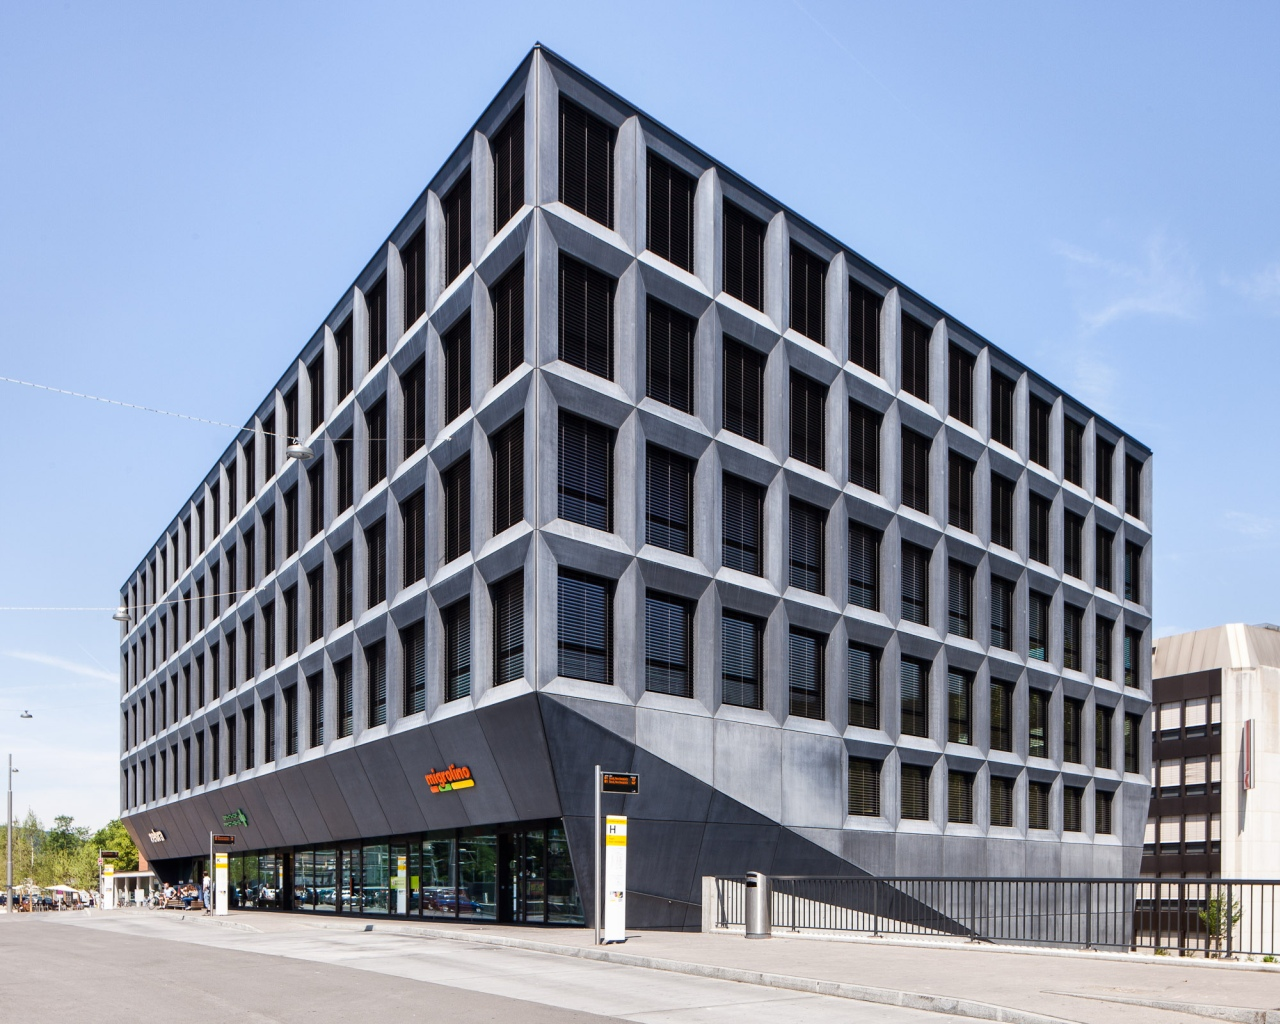 Office building in liestal christ gantenbein archdaily for Office design archdaily